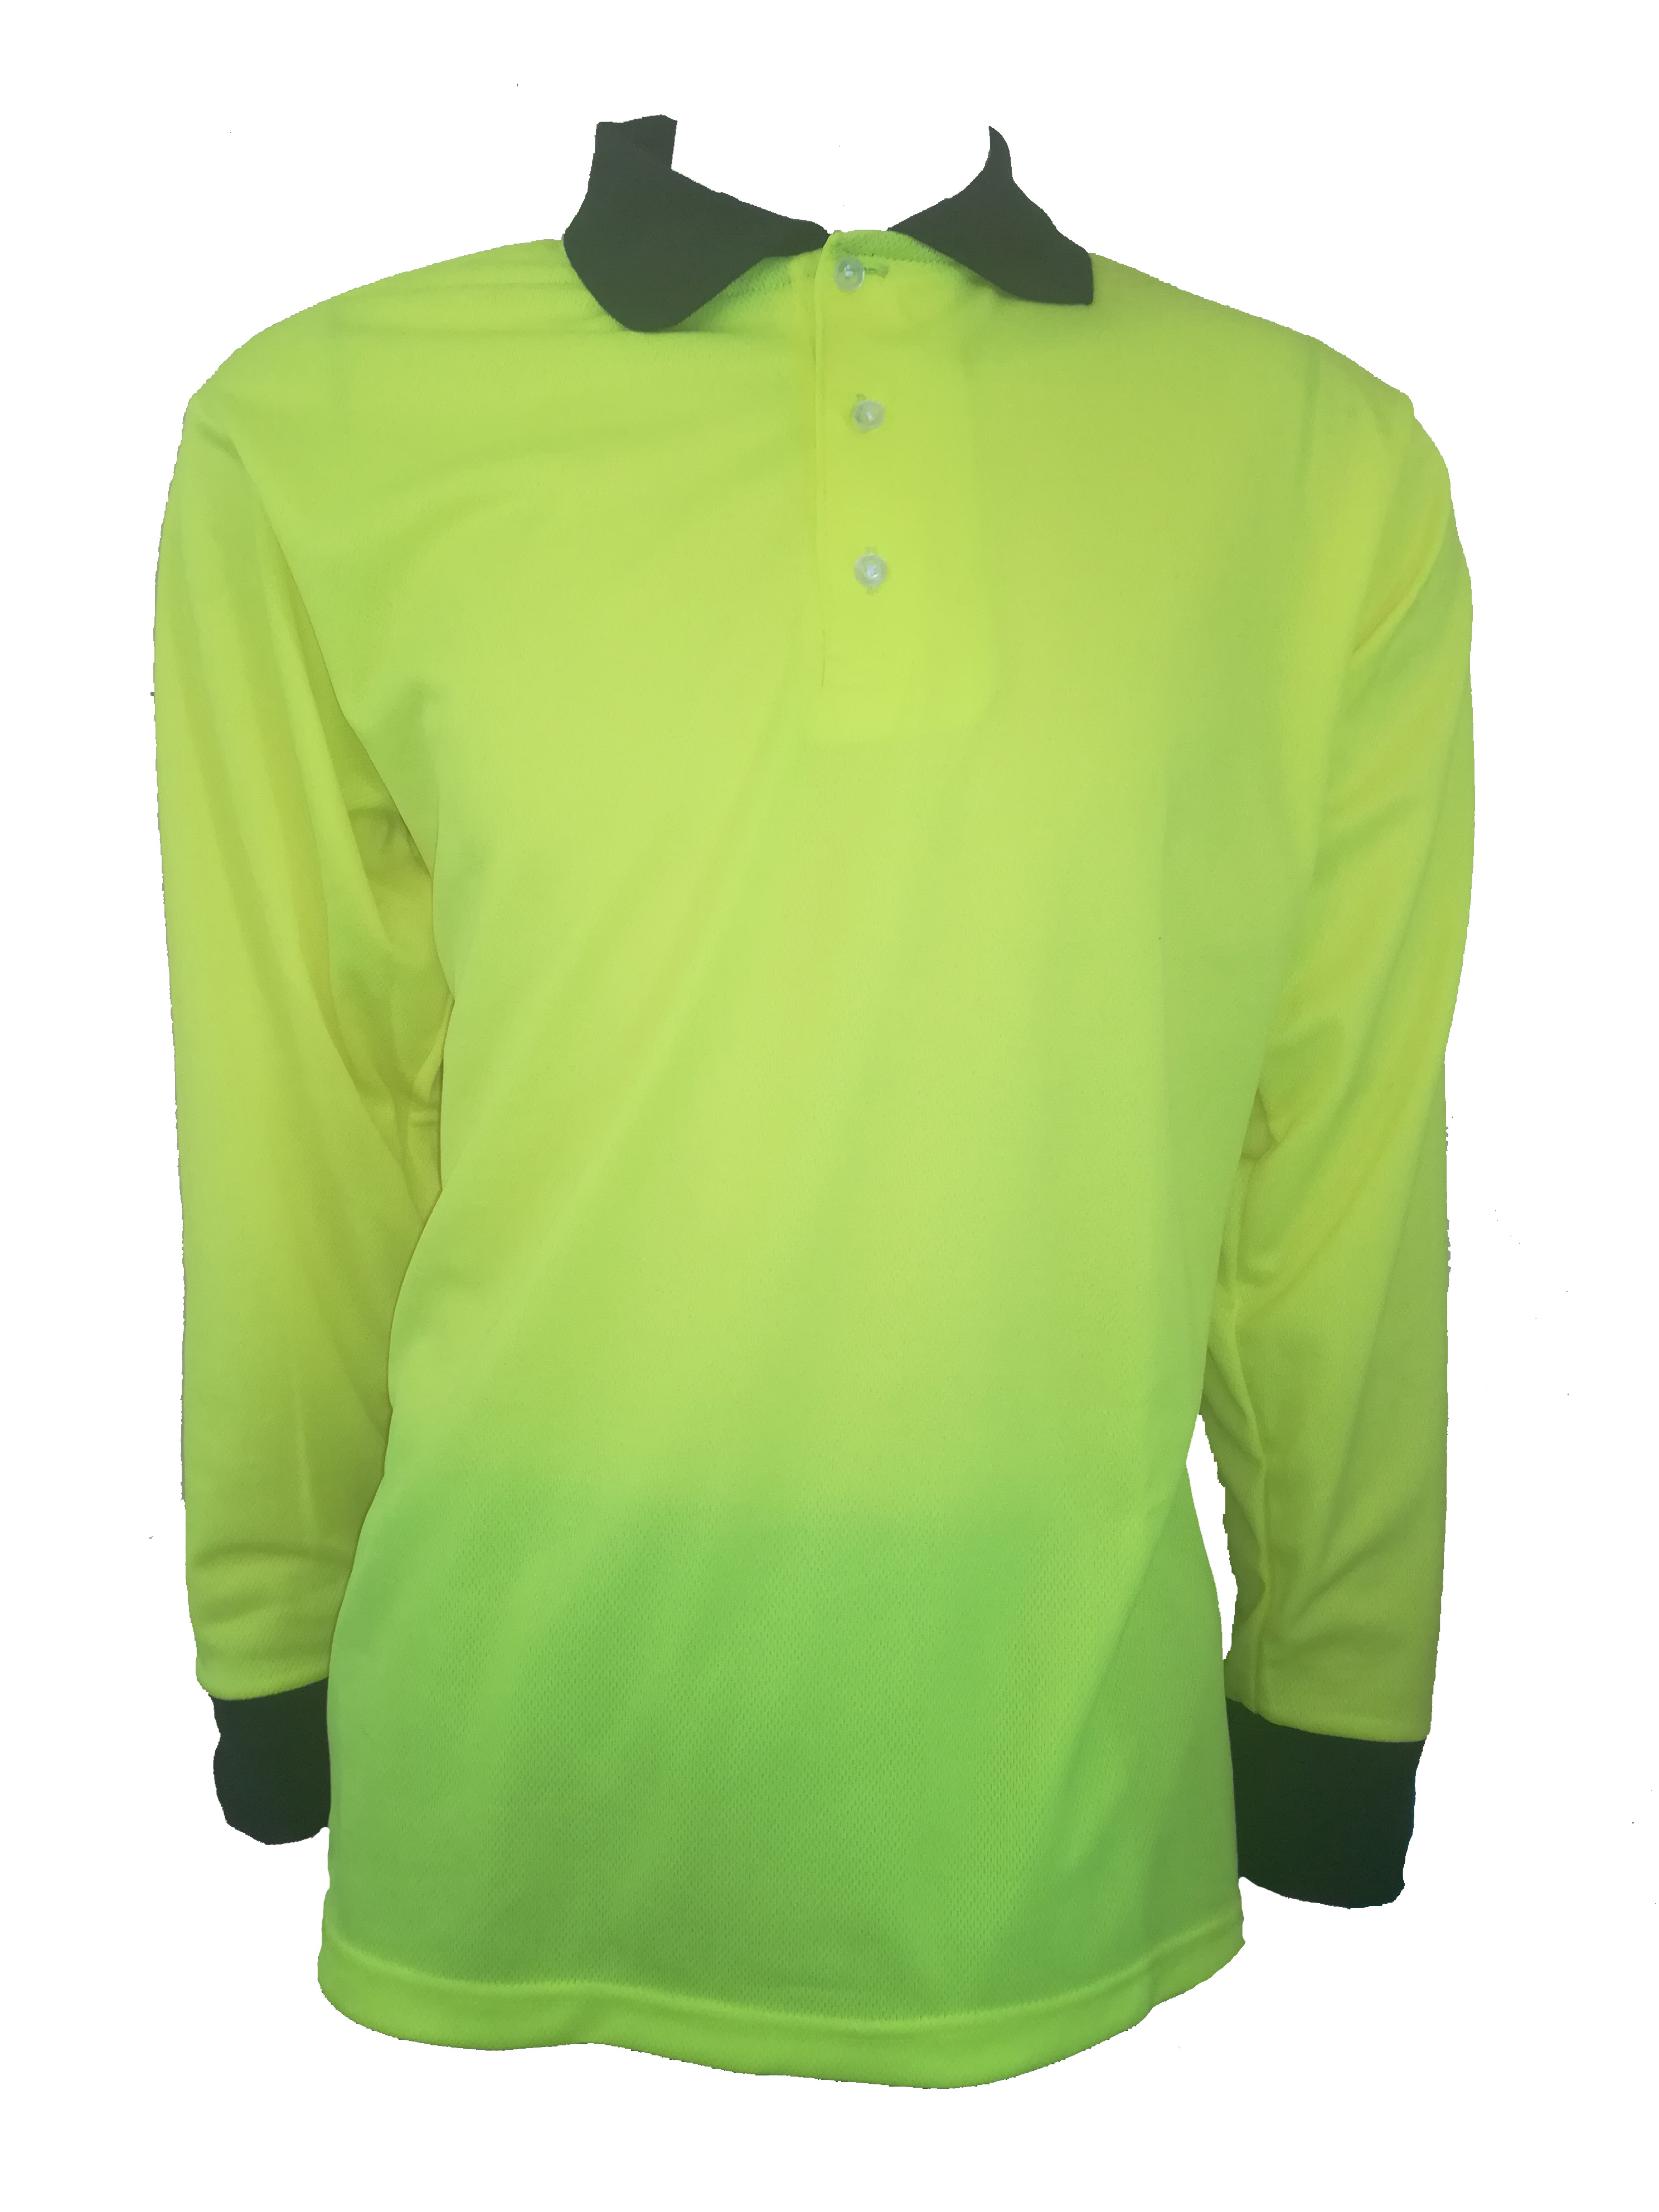 Long Sleeve Safety Golf Shirts